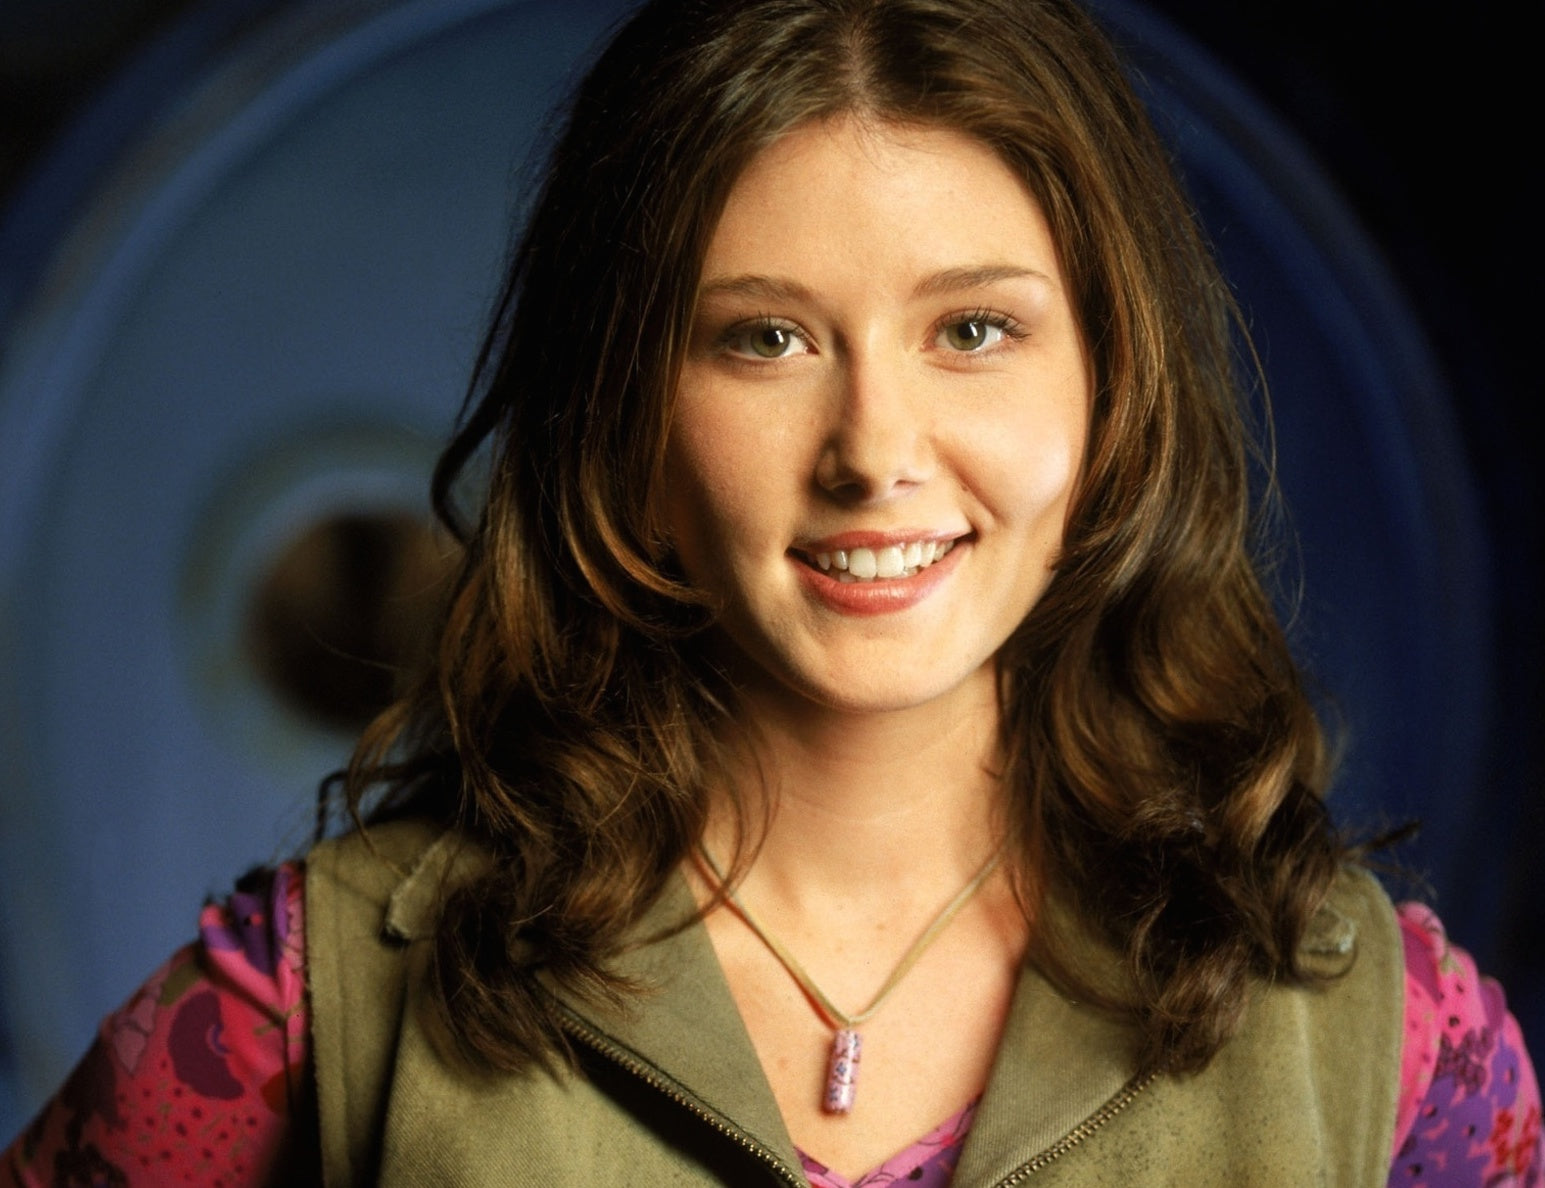 Young Jewel Staite nude photos 2019